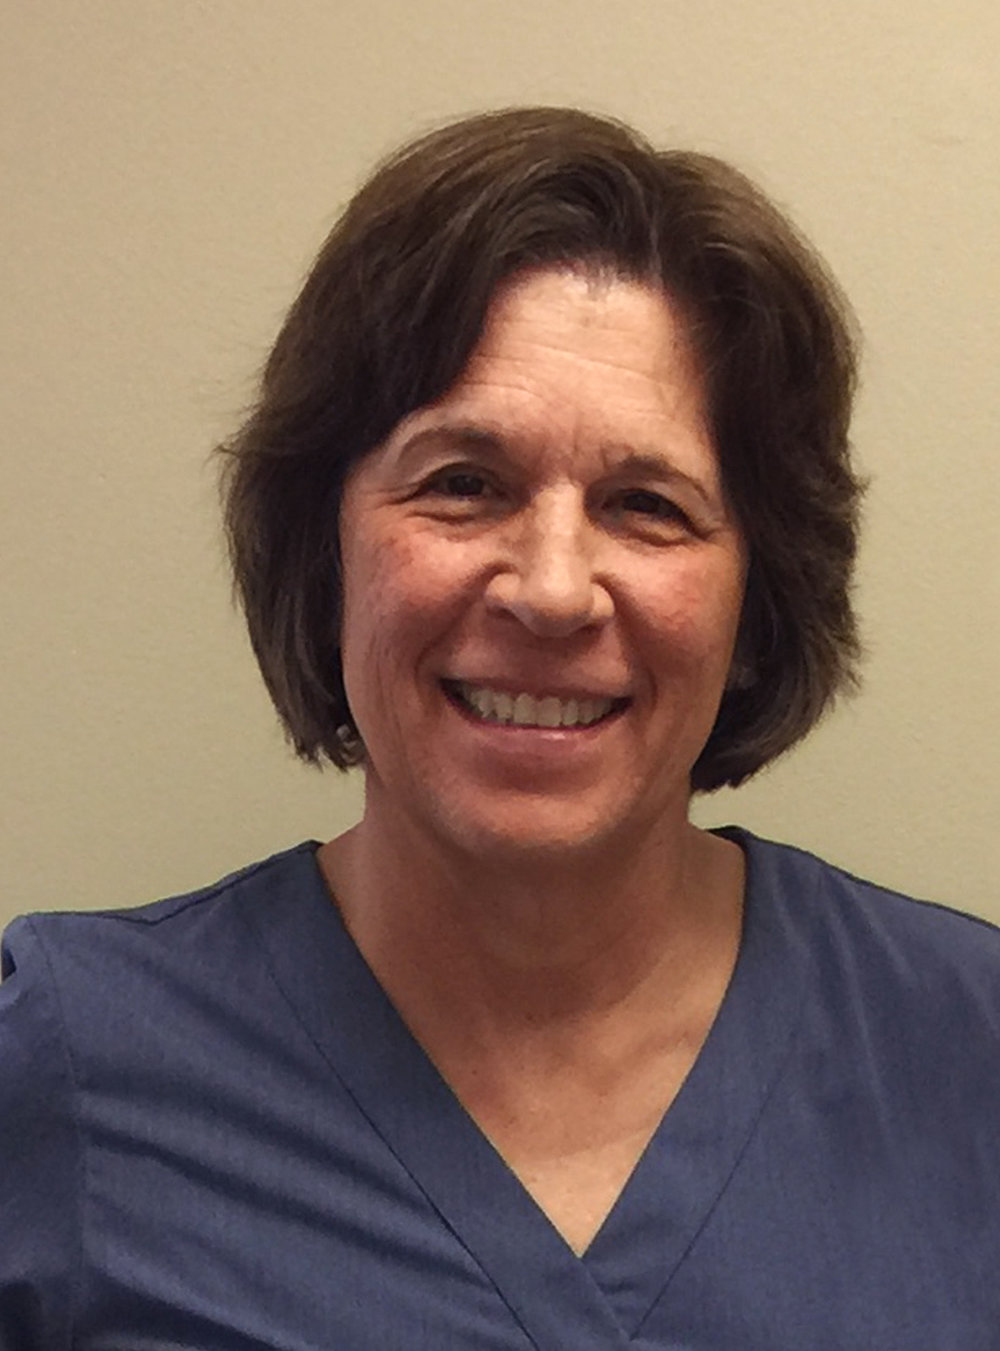 Susan Heidkamp, RN, BSN   Sue comes in during our IVF cycles to help out. We love her help!